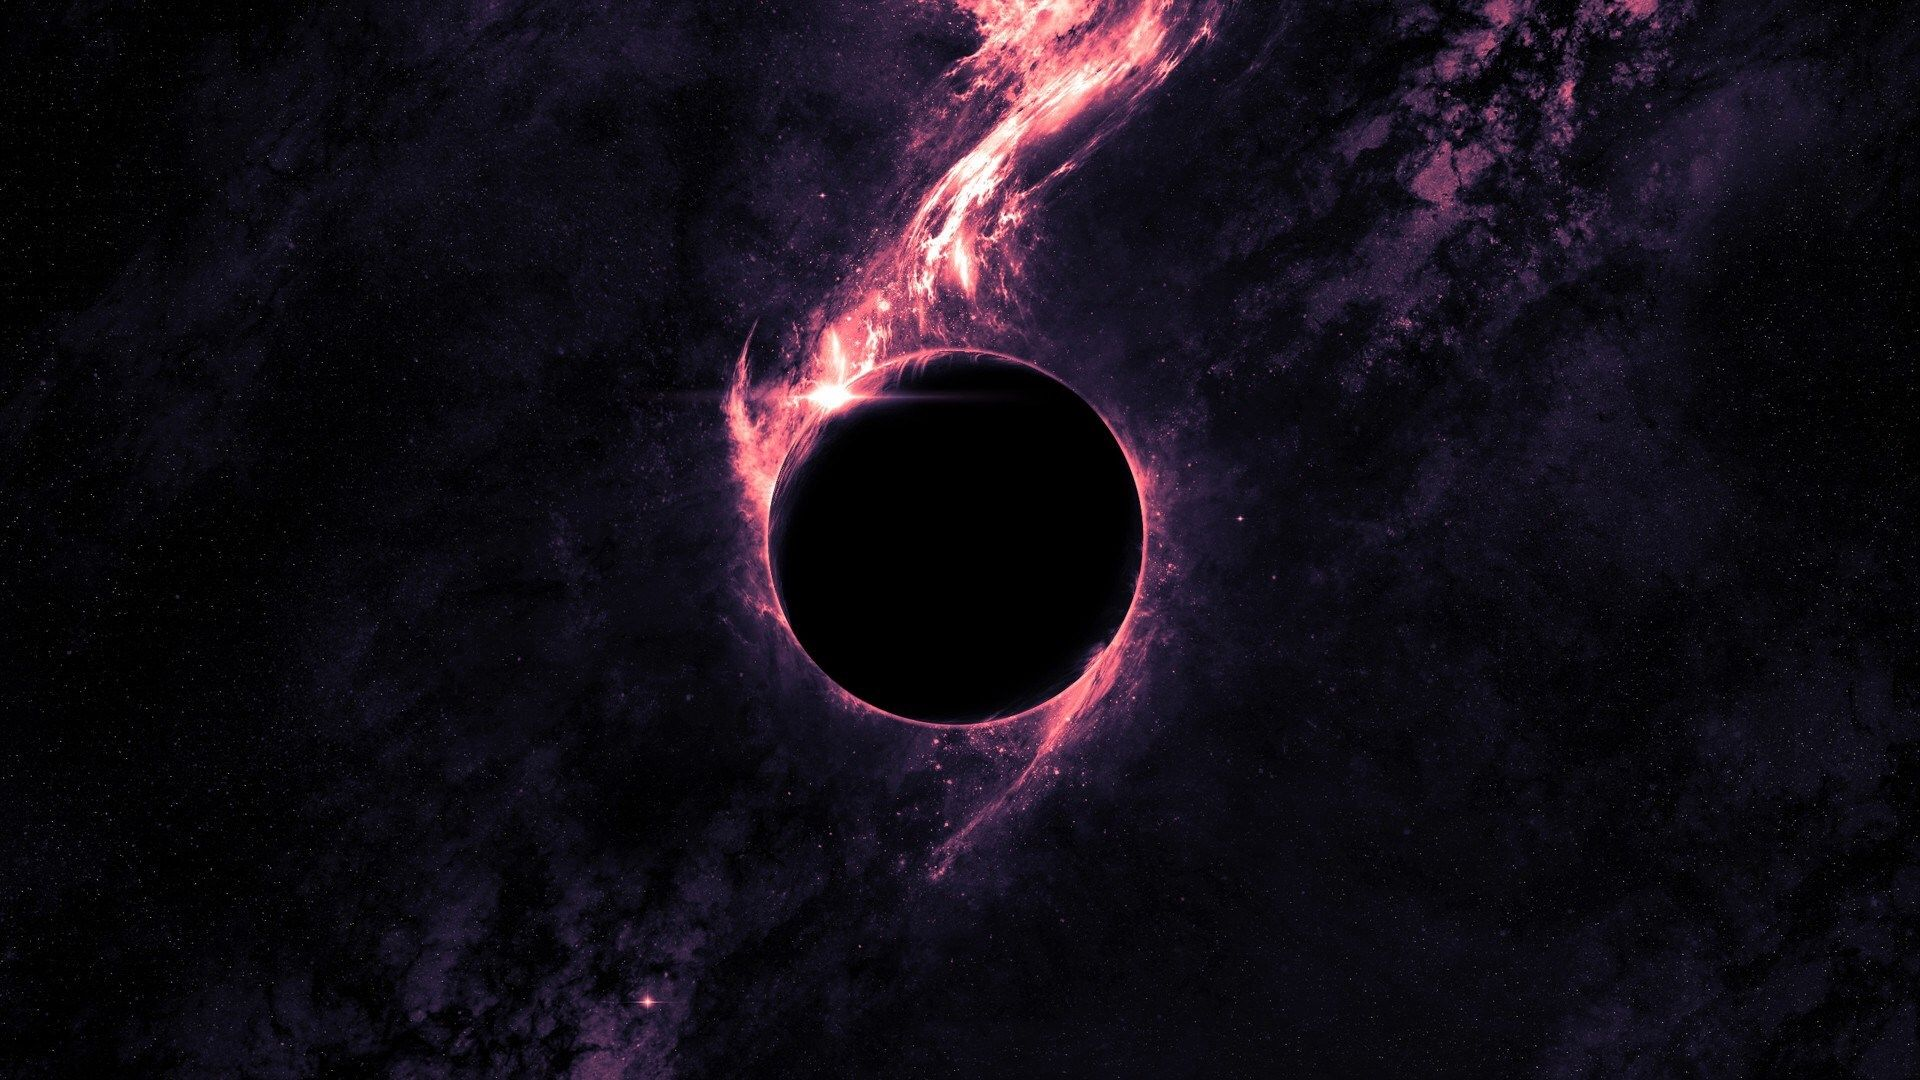 1920x1080 - Black Hole Wallpapers 25